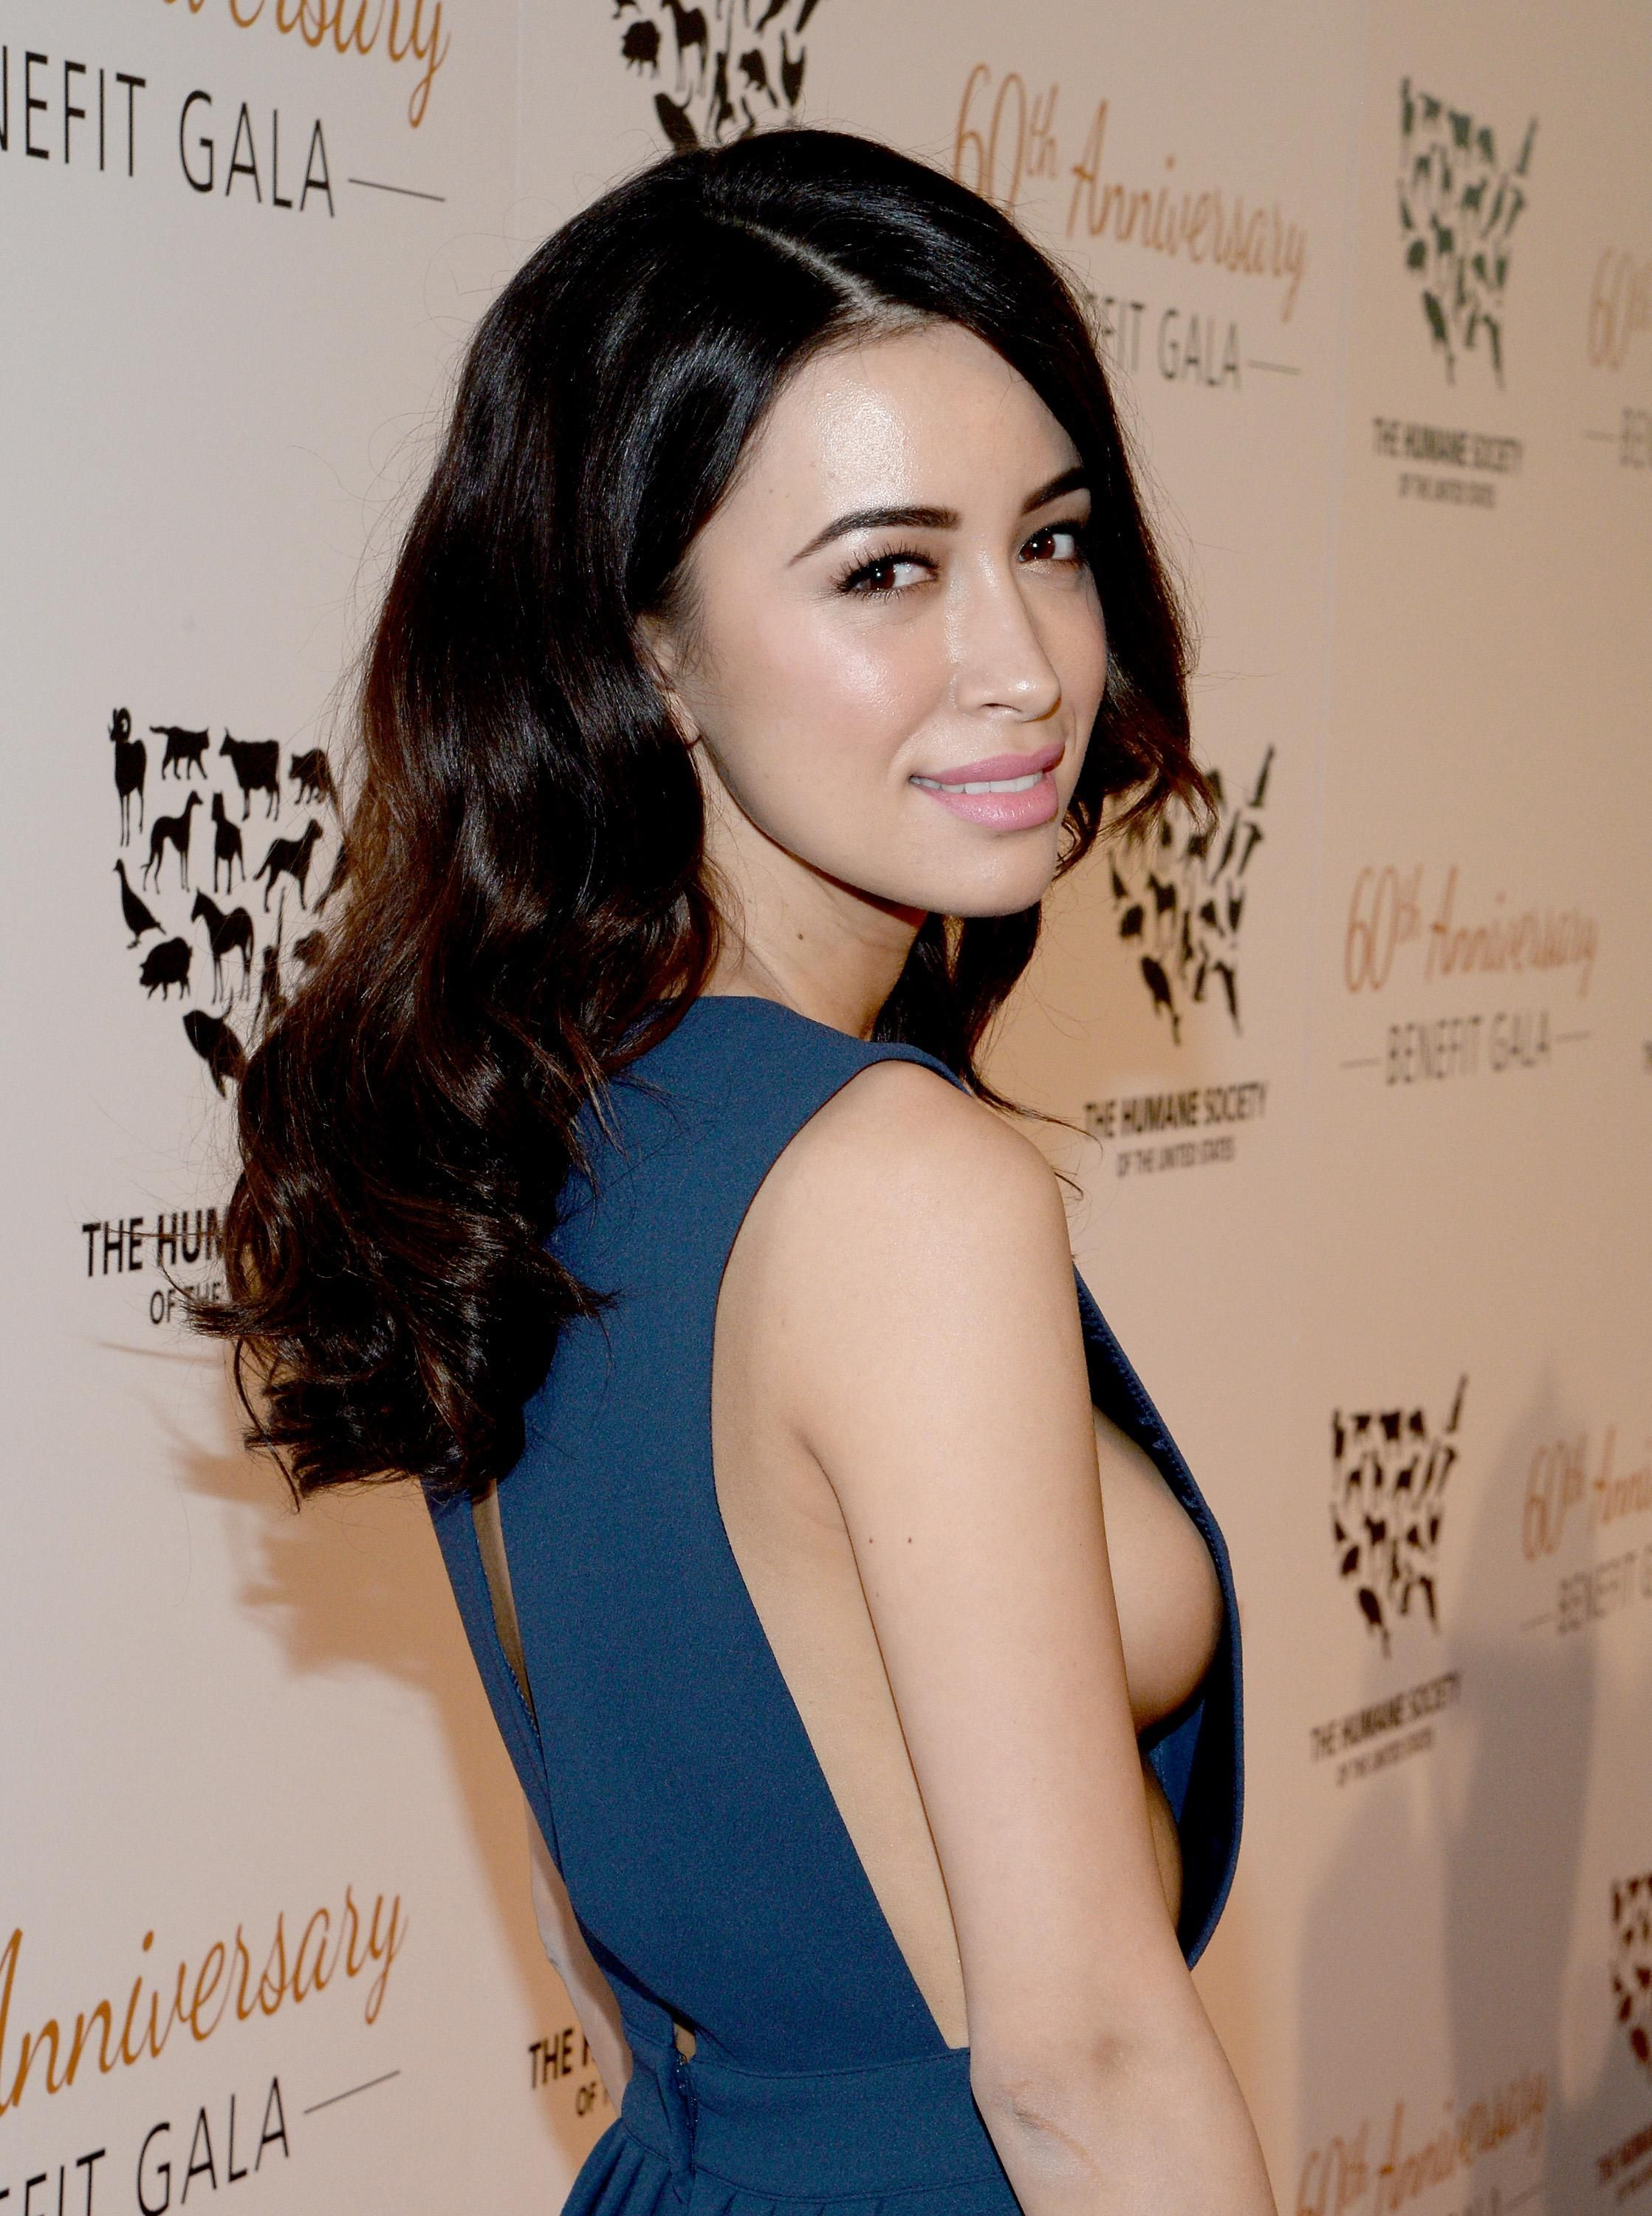 Celebrity Christian Serratos nude photos 2019